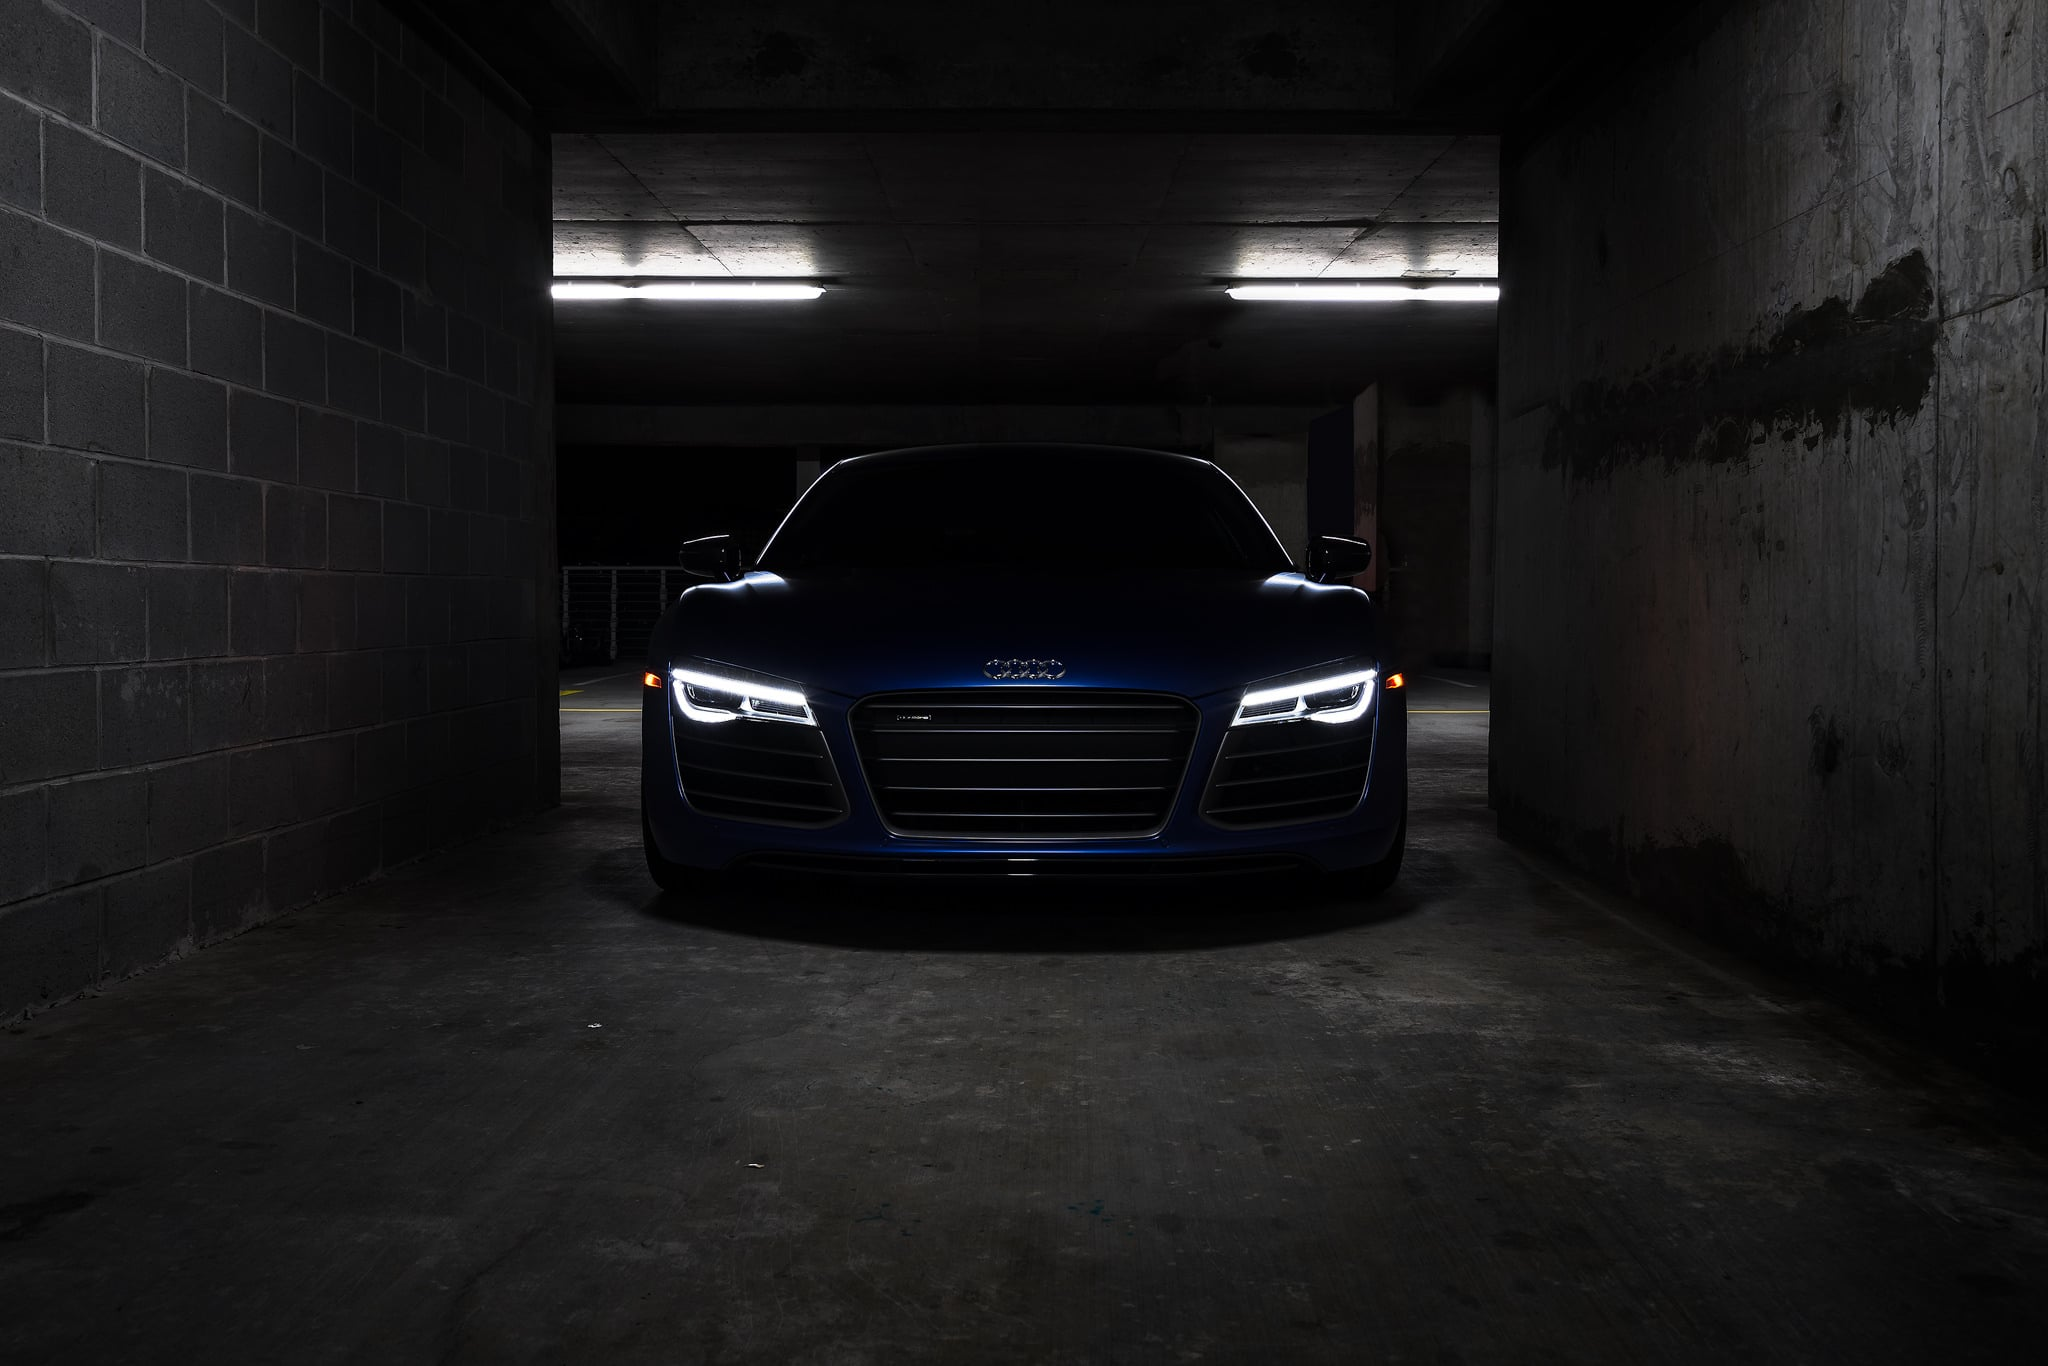 Black Audi R8 Wallpapers - Top Free Black Audi R8 Backgrounds